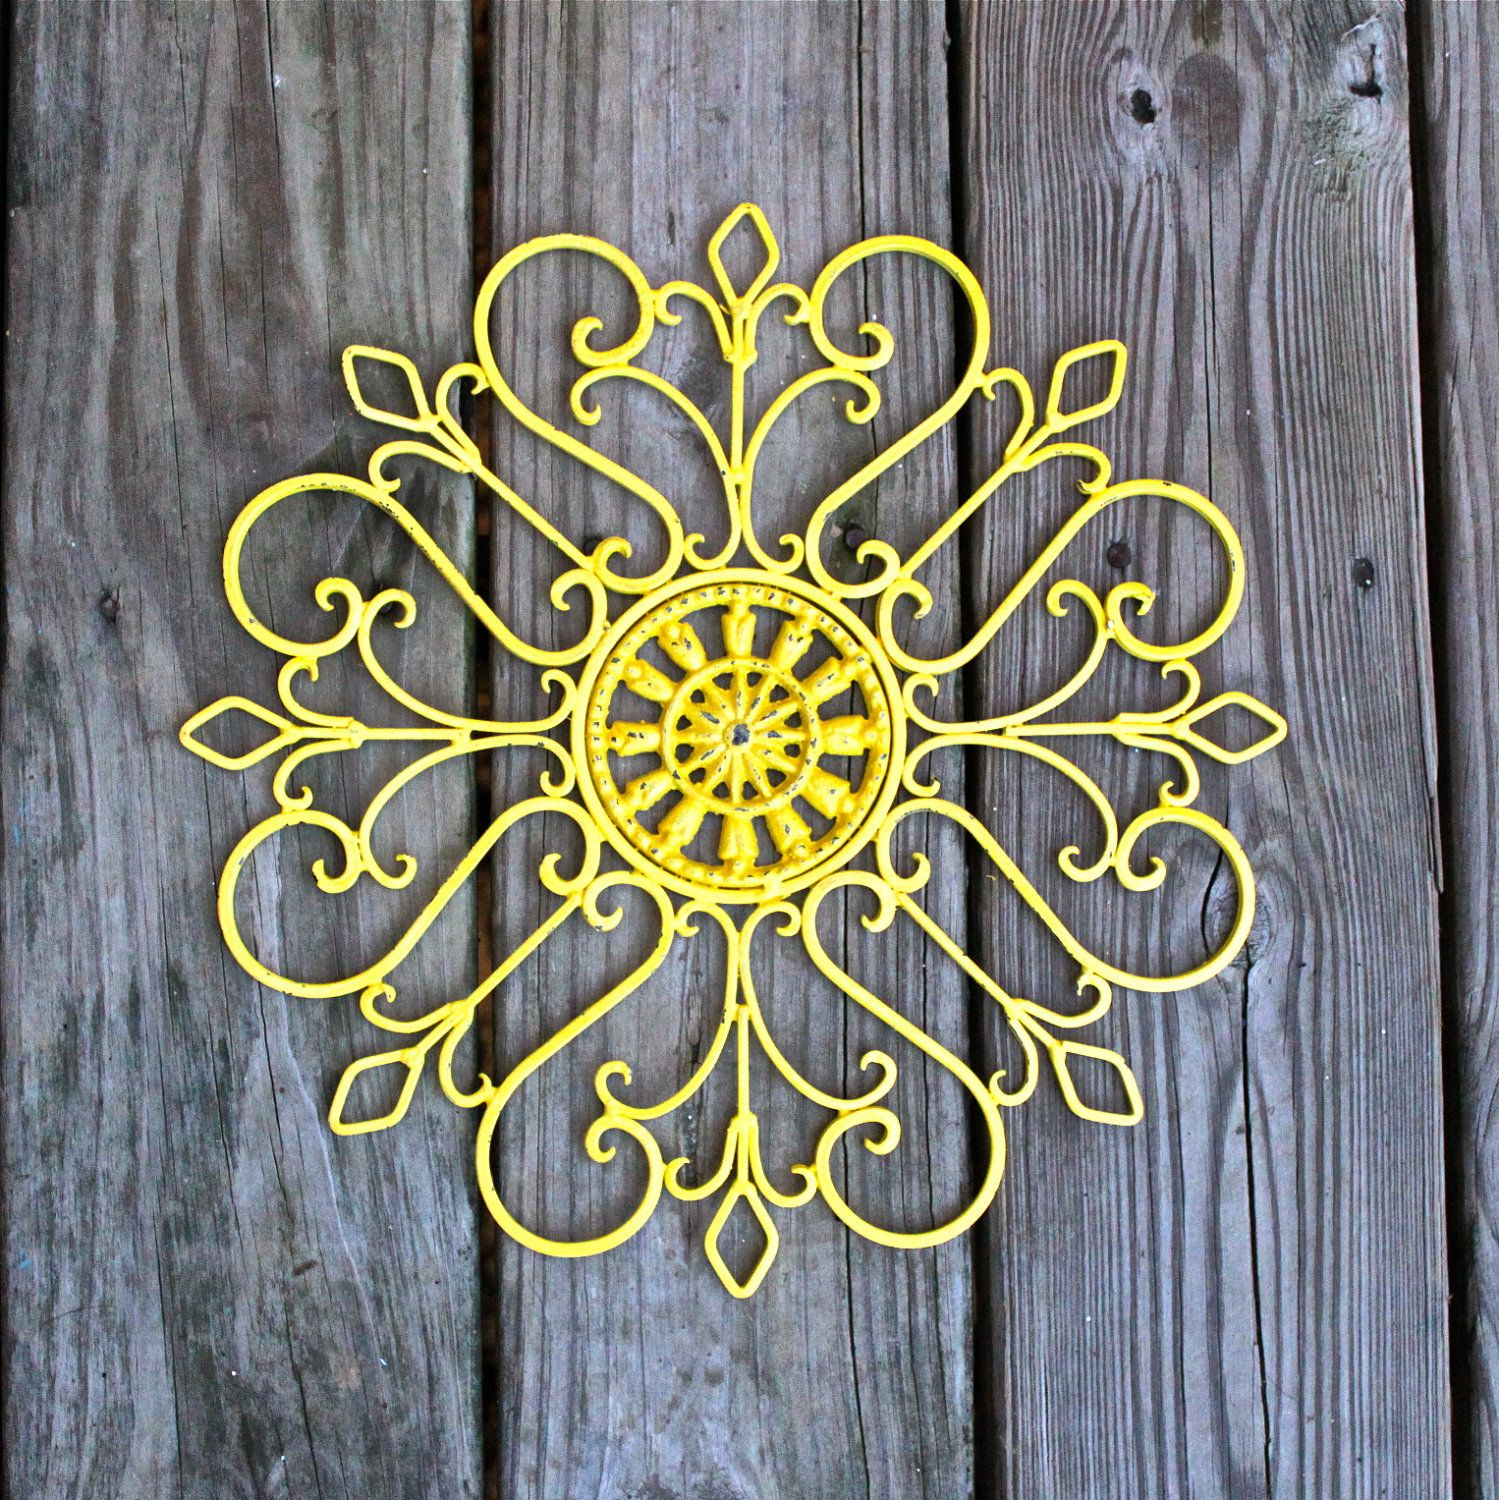 Metal Wall Fixture /Yellow /Distressed Patio Decor /Painted Bright ...